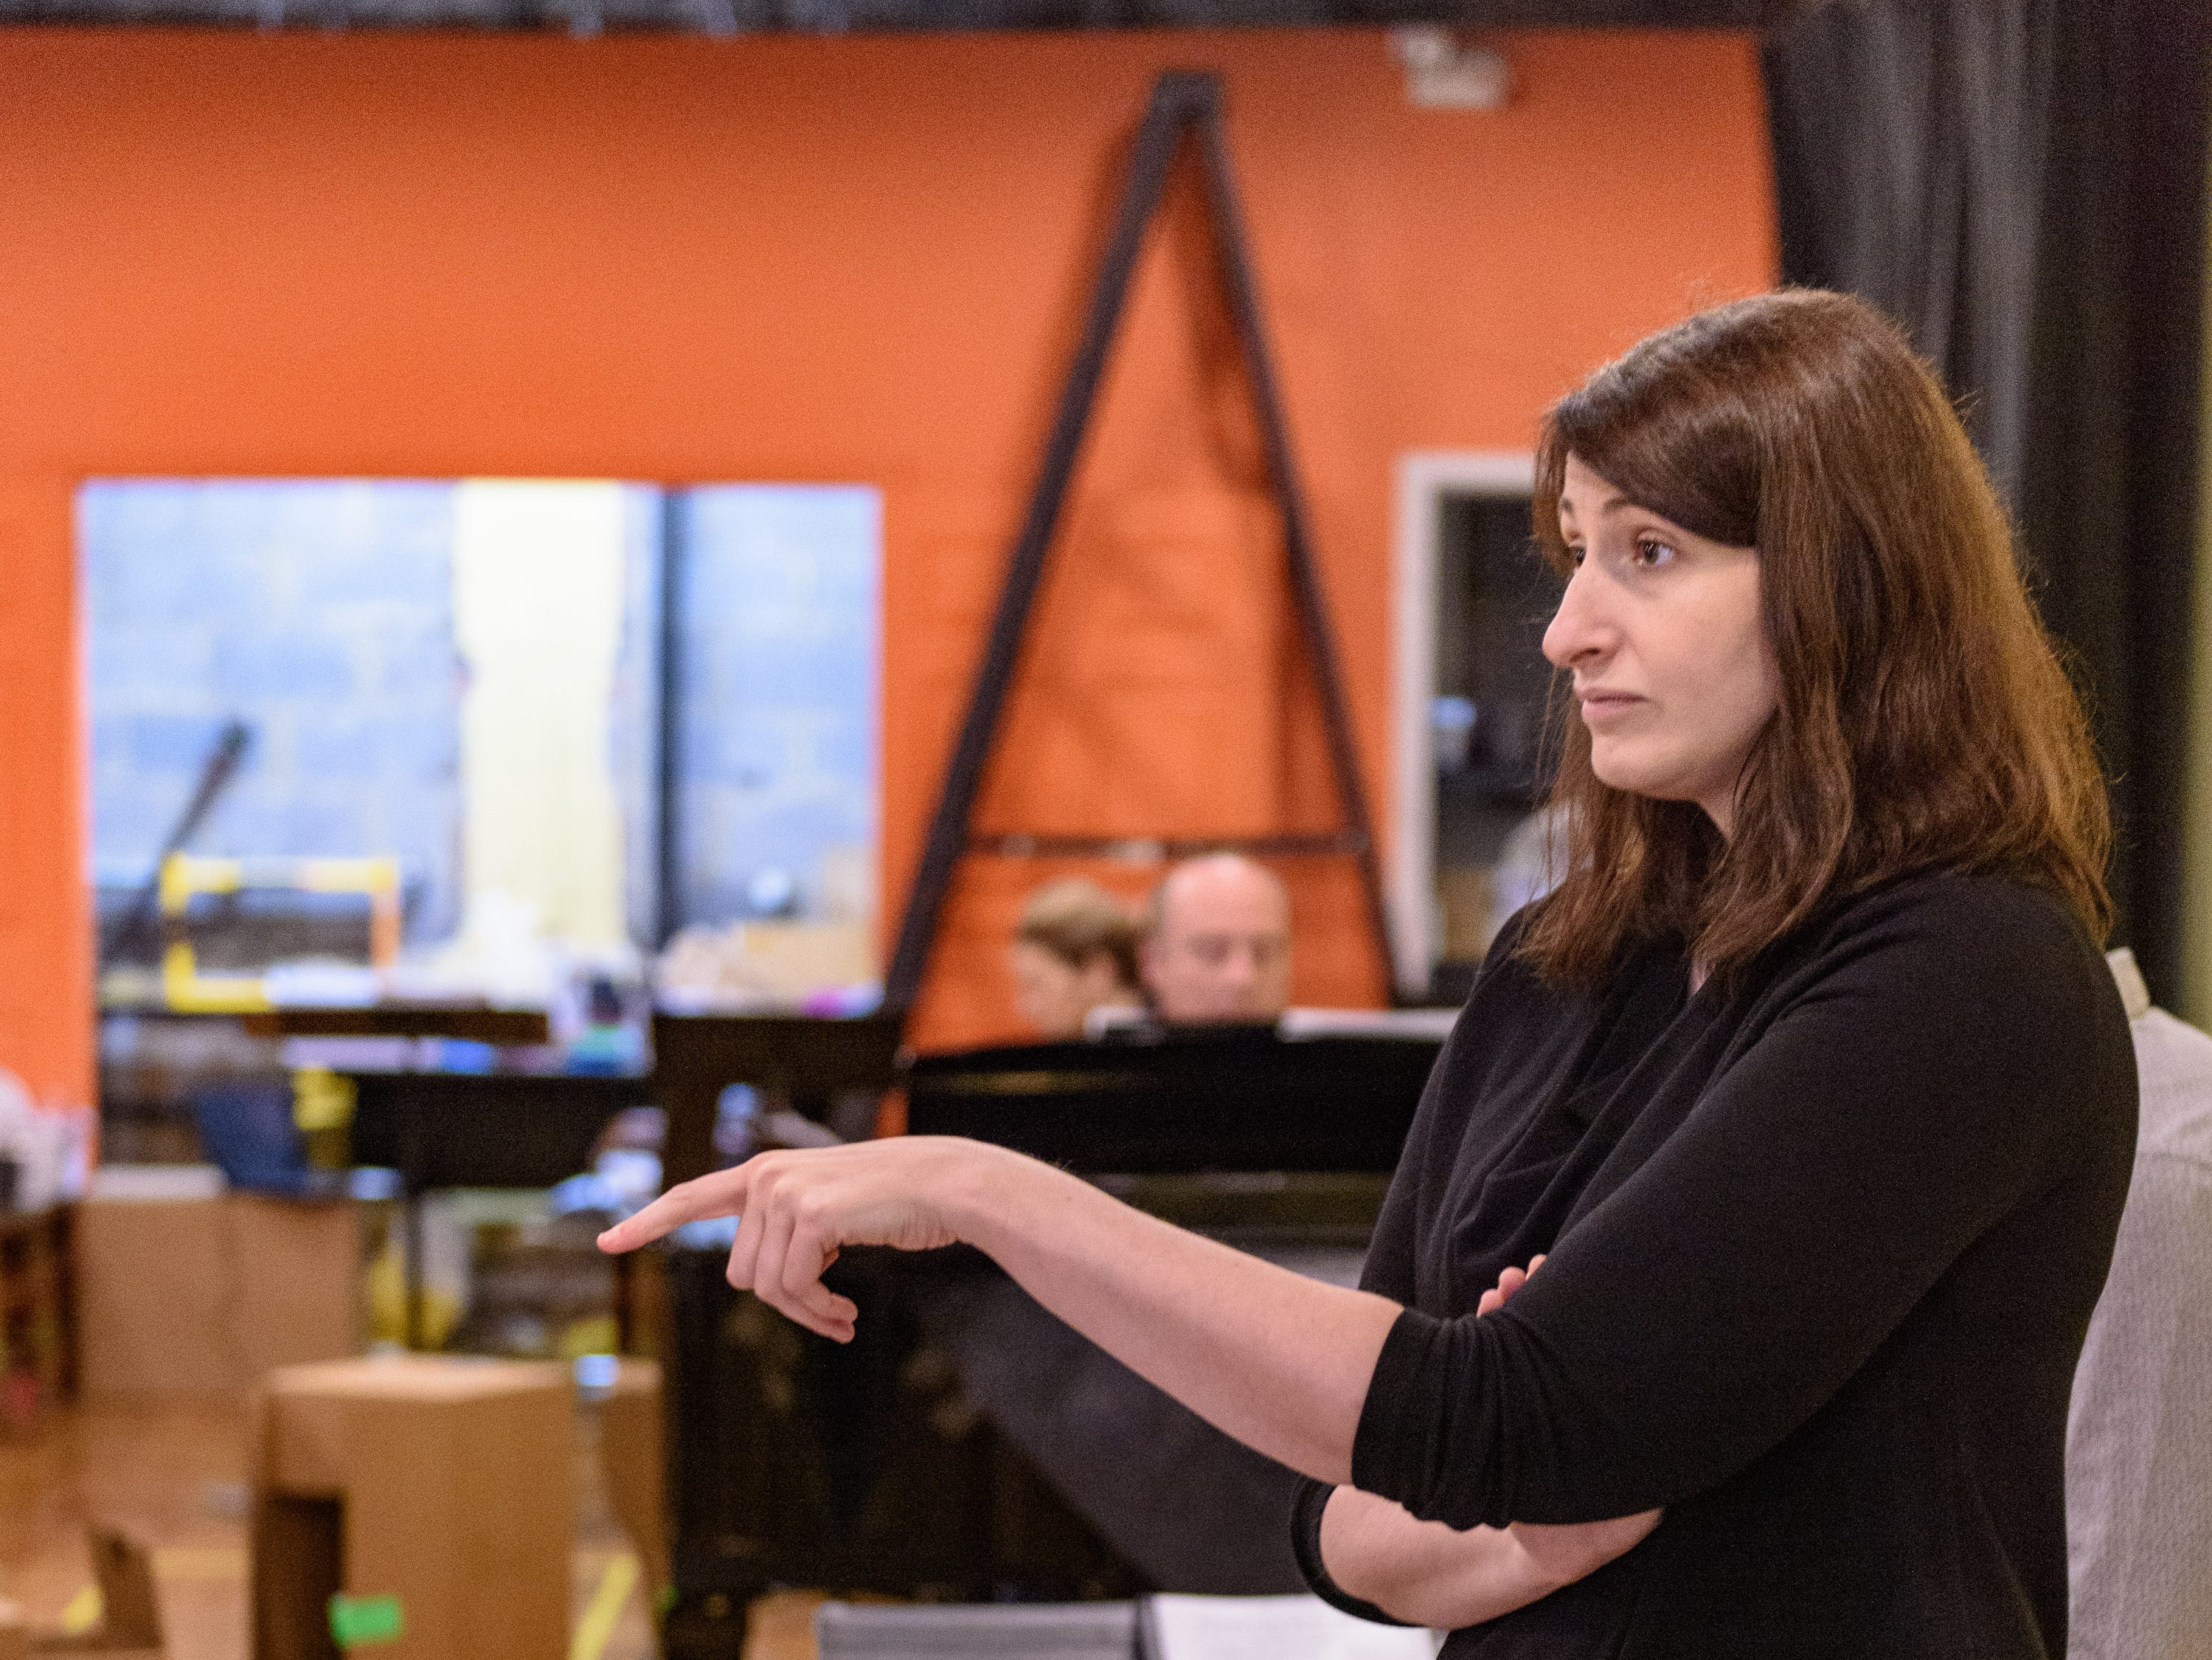 Mary Birnbaum directs a scene in Kentucky Opera's production of ÒEnemies, A Love Story,Ó in their rehearsal space at the Brown Theater. Oct. 27, 2018